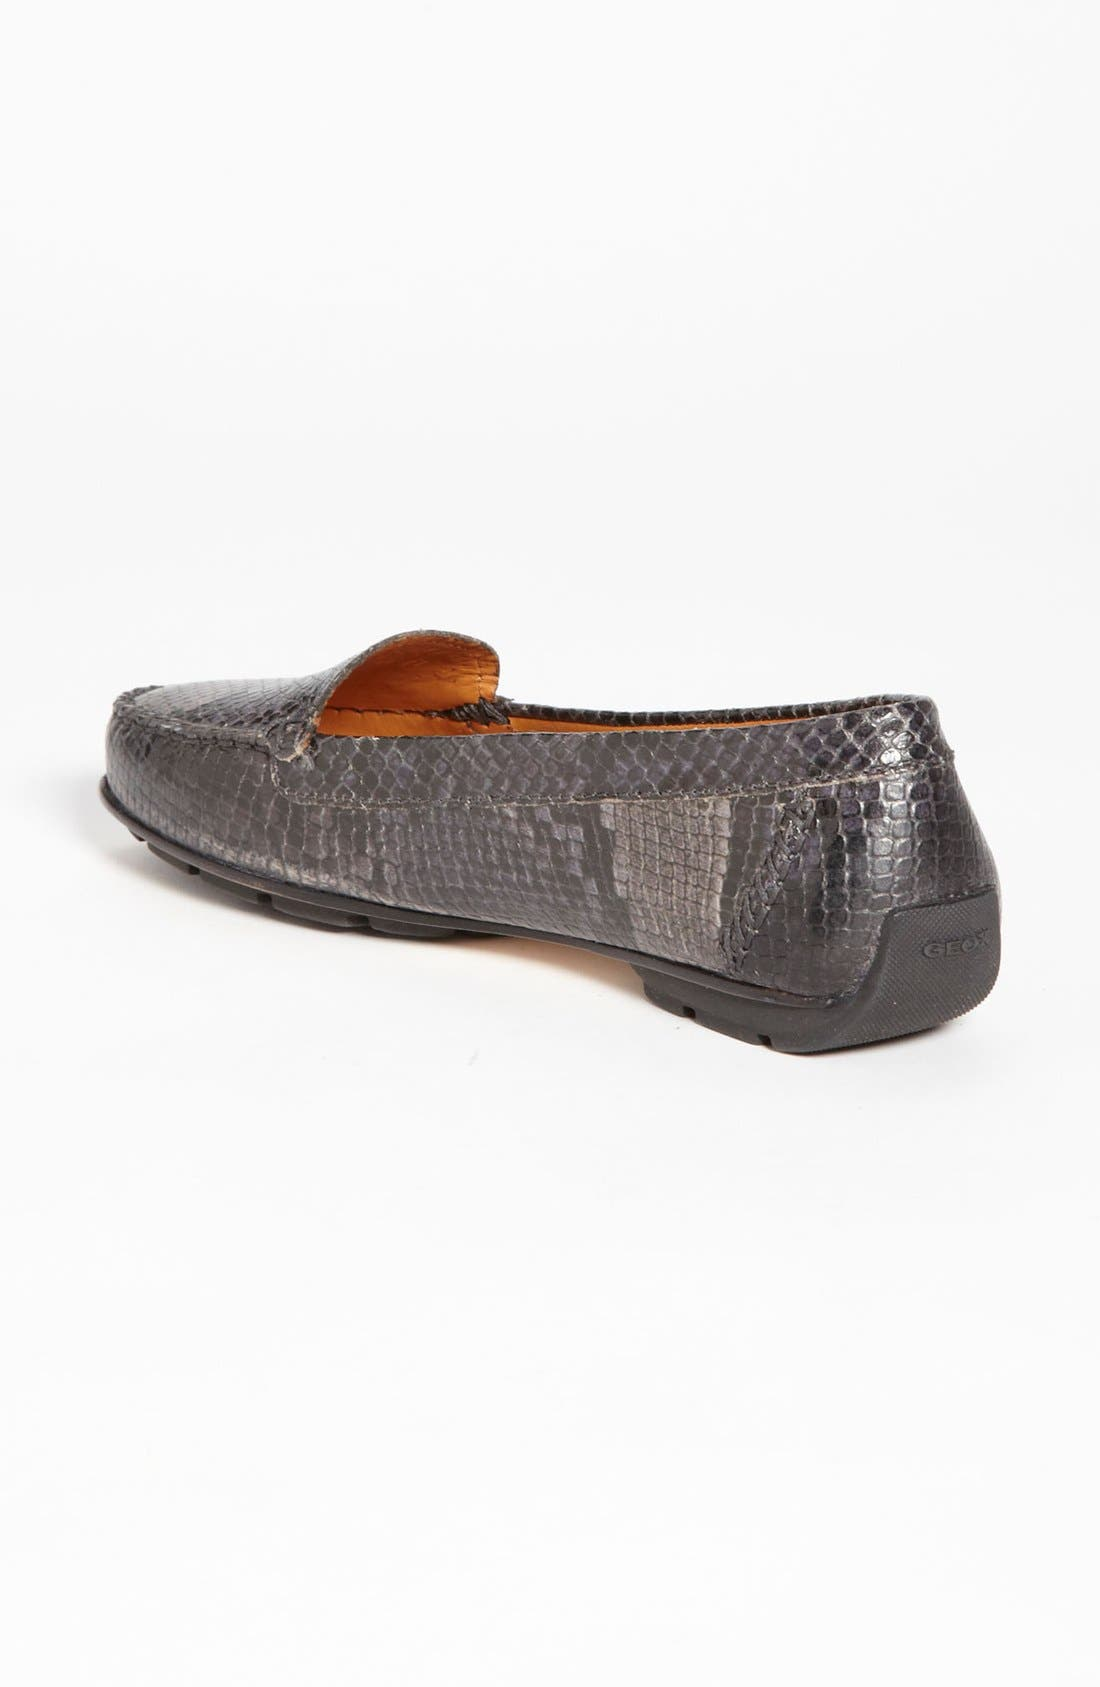 Alternate Image 2  - Geox 'Italy' Snake Embossed Moccasin (Online Only Color)